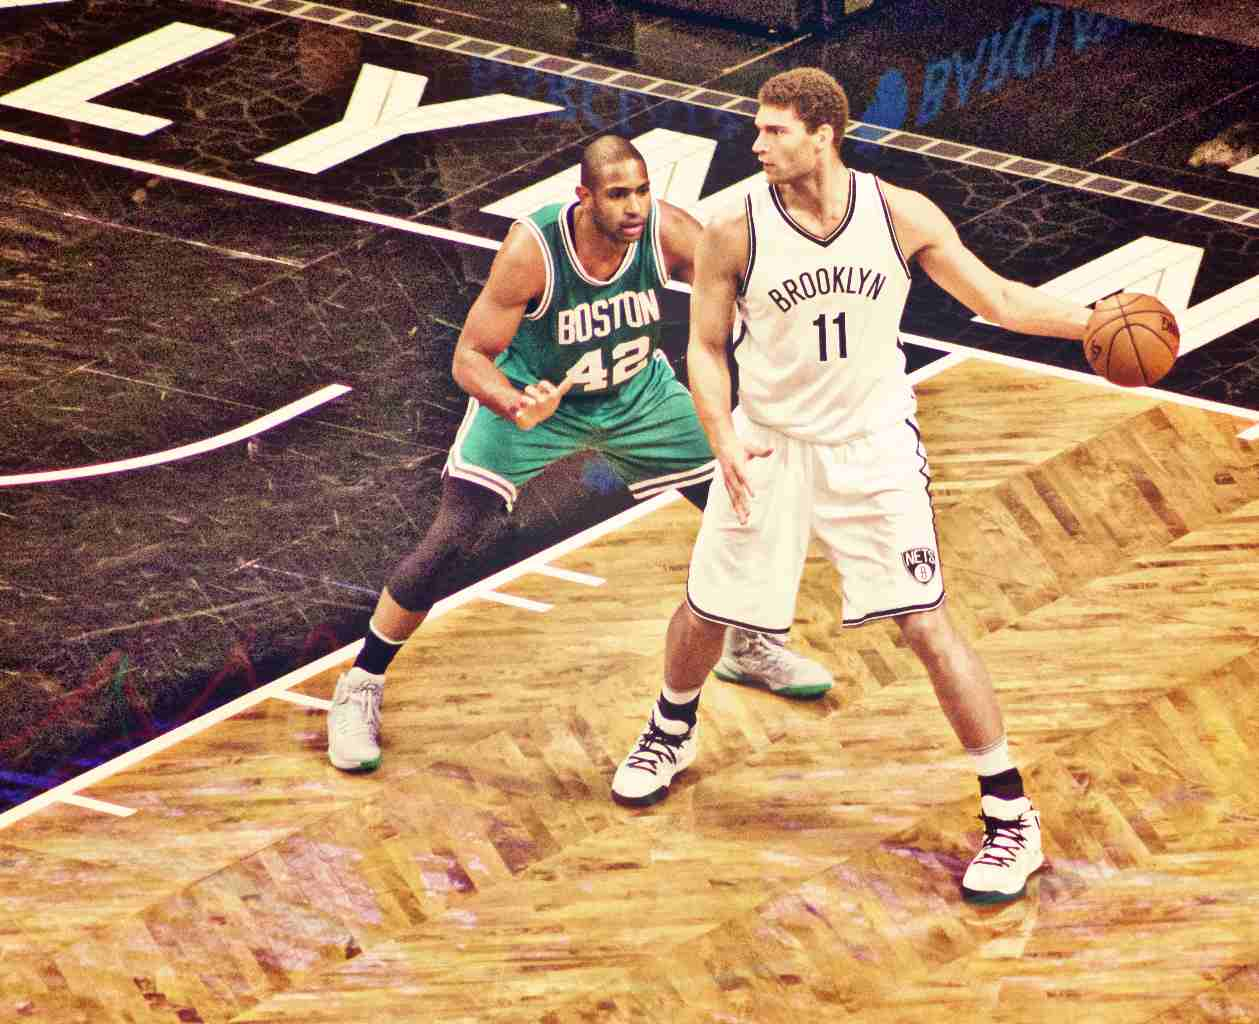 Defensa clave Boston Celtics